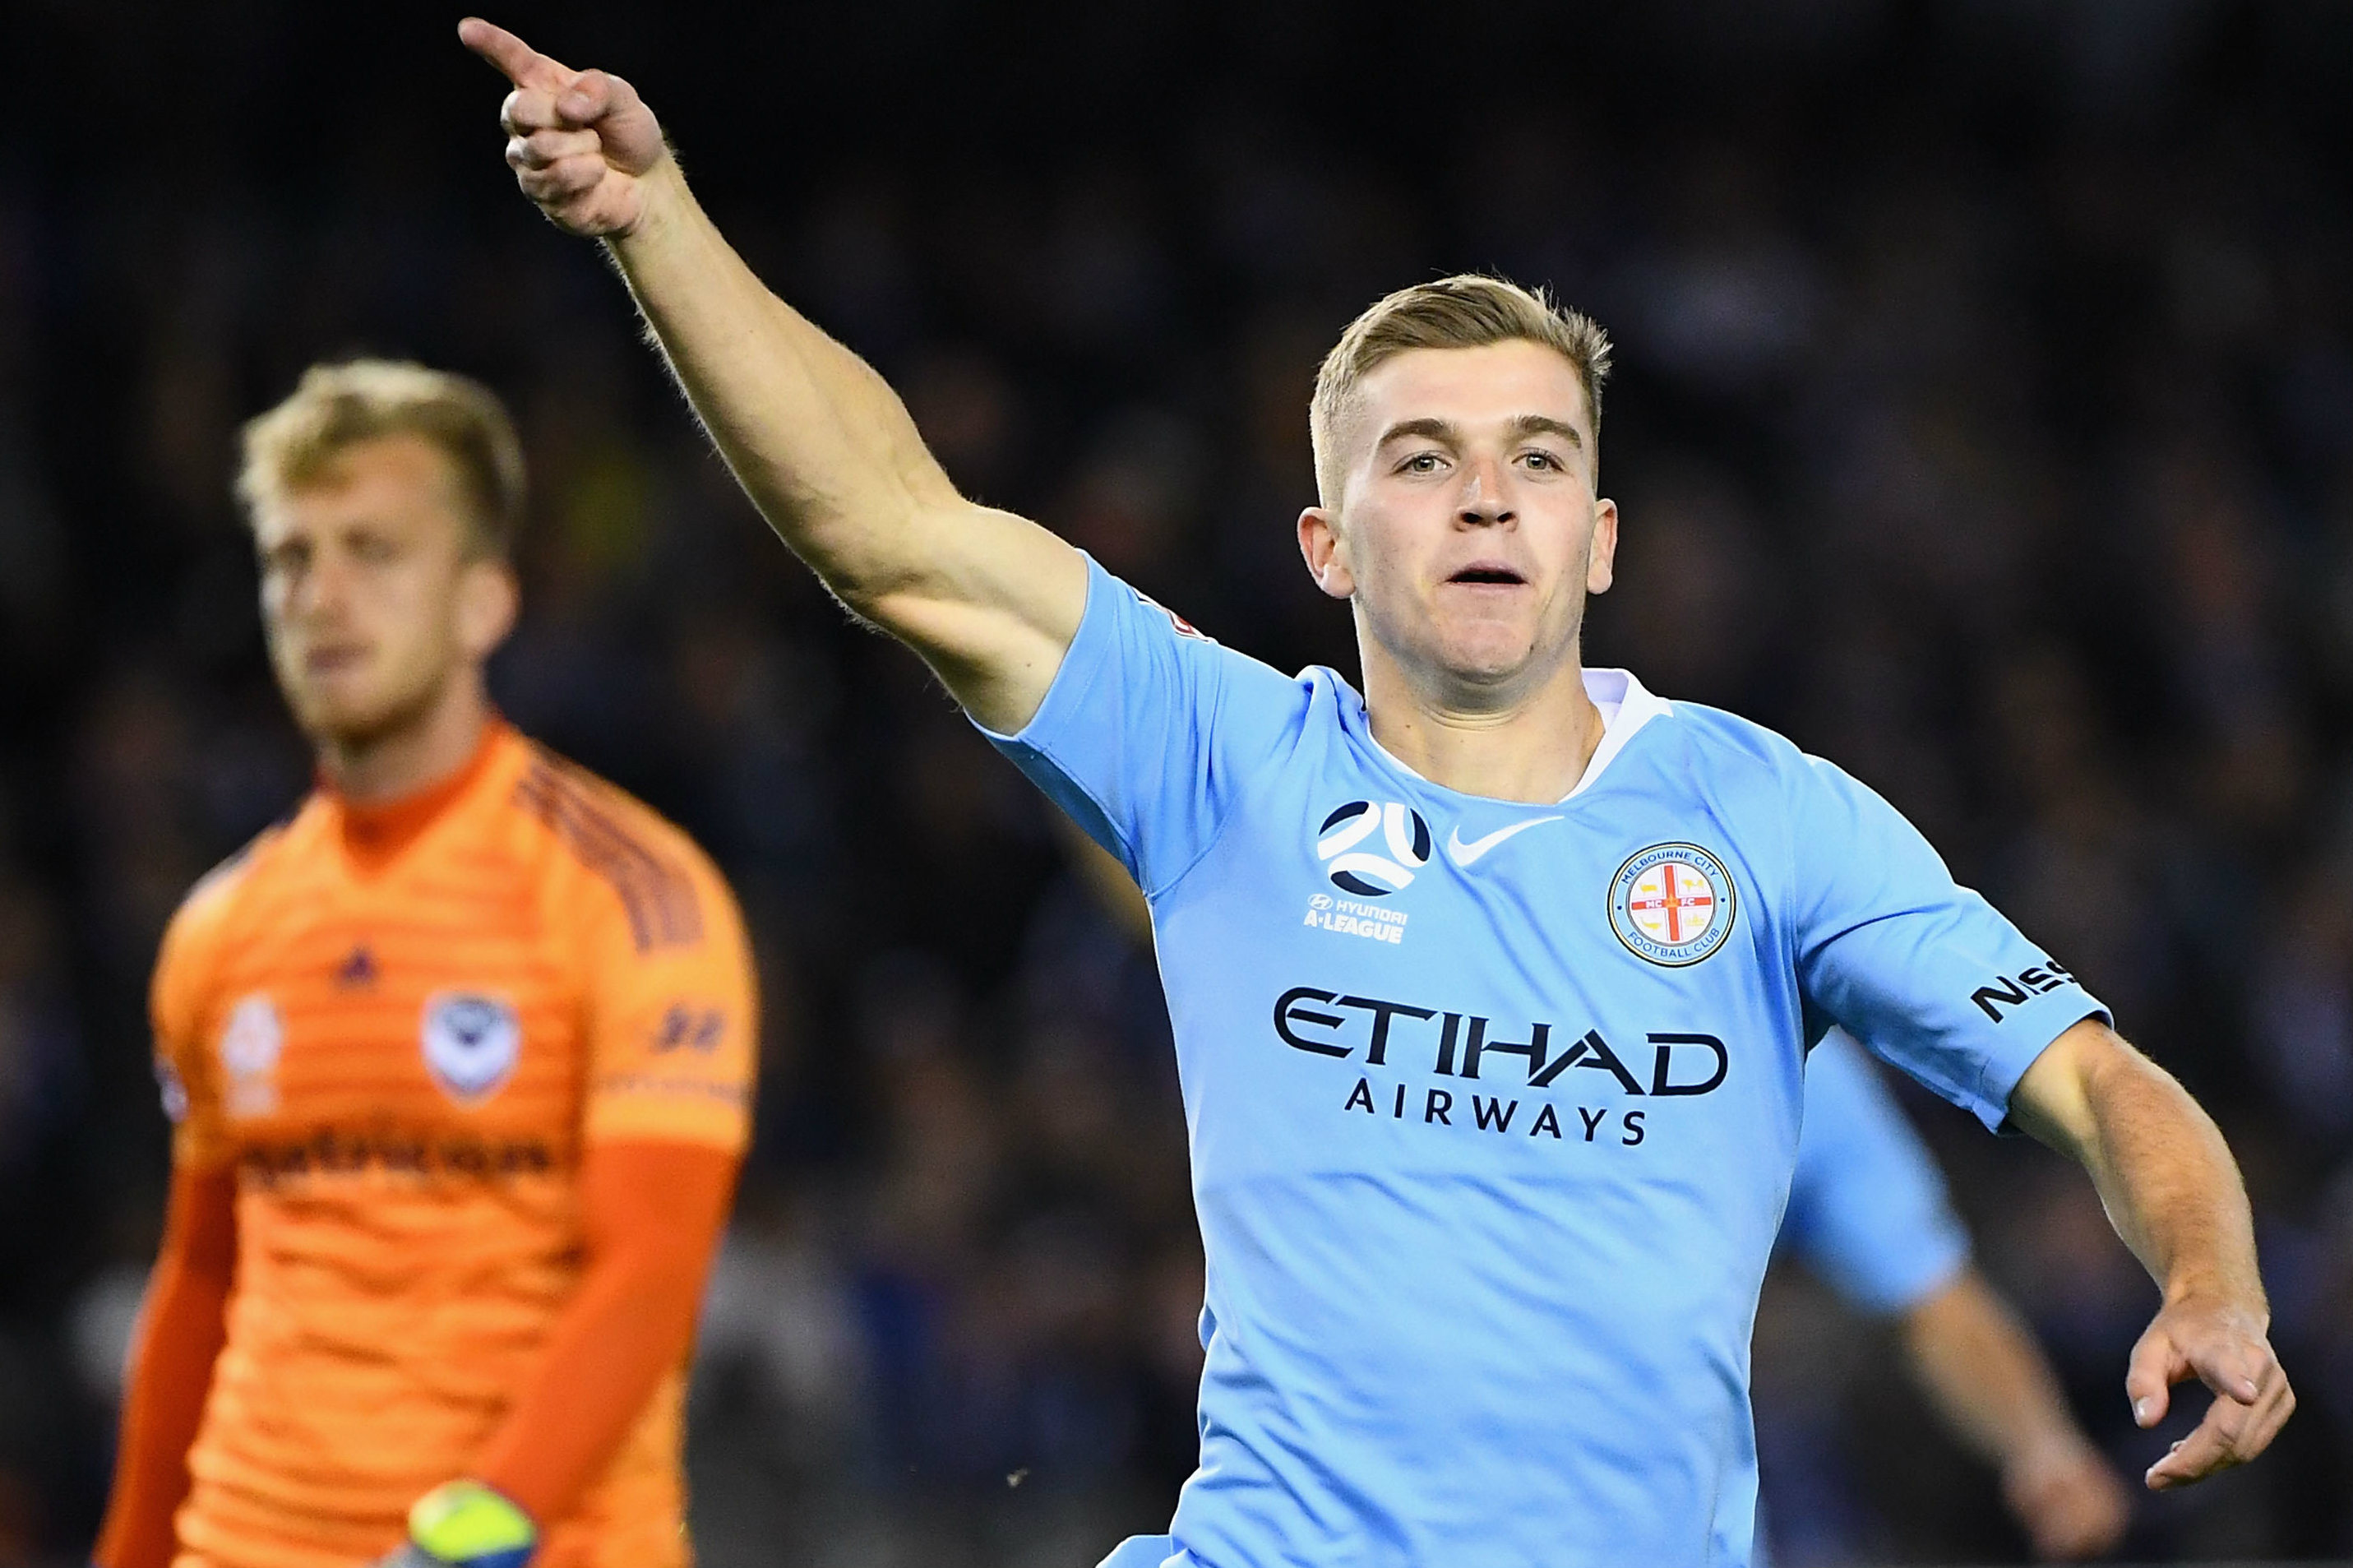 Reds midfielder Riley McGree celebrating a goal while playing for City last season